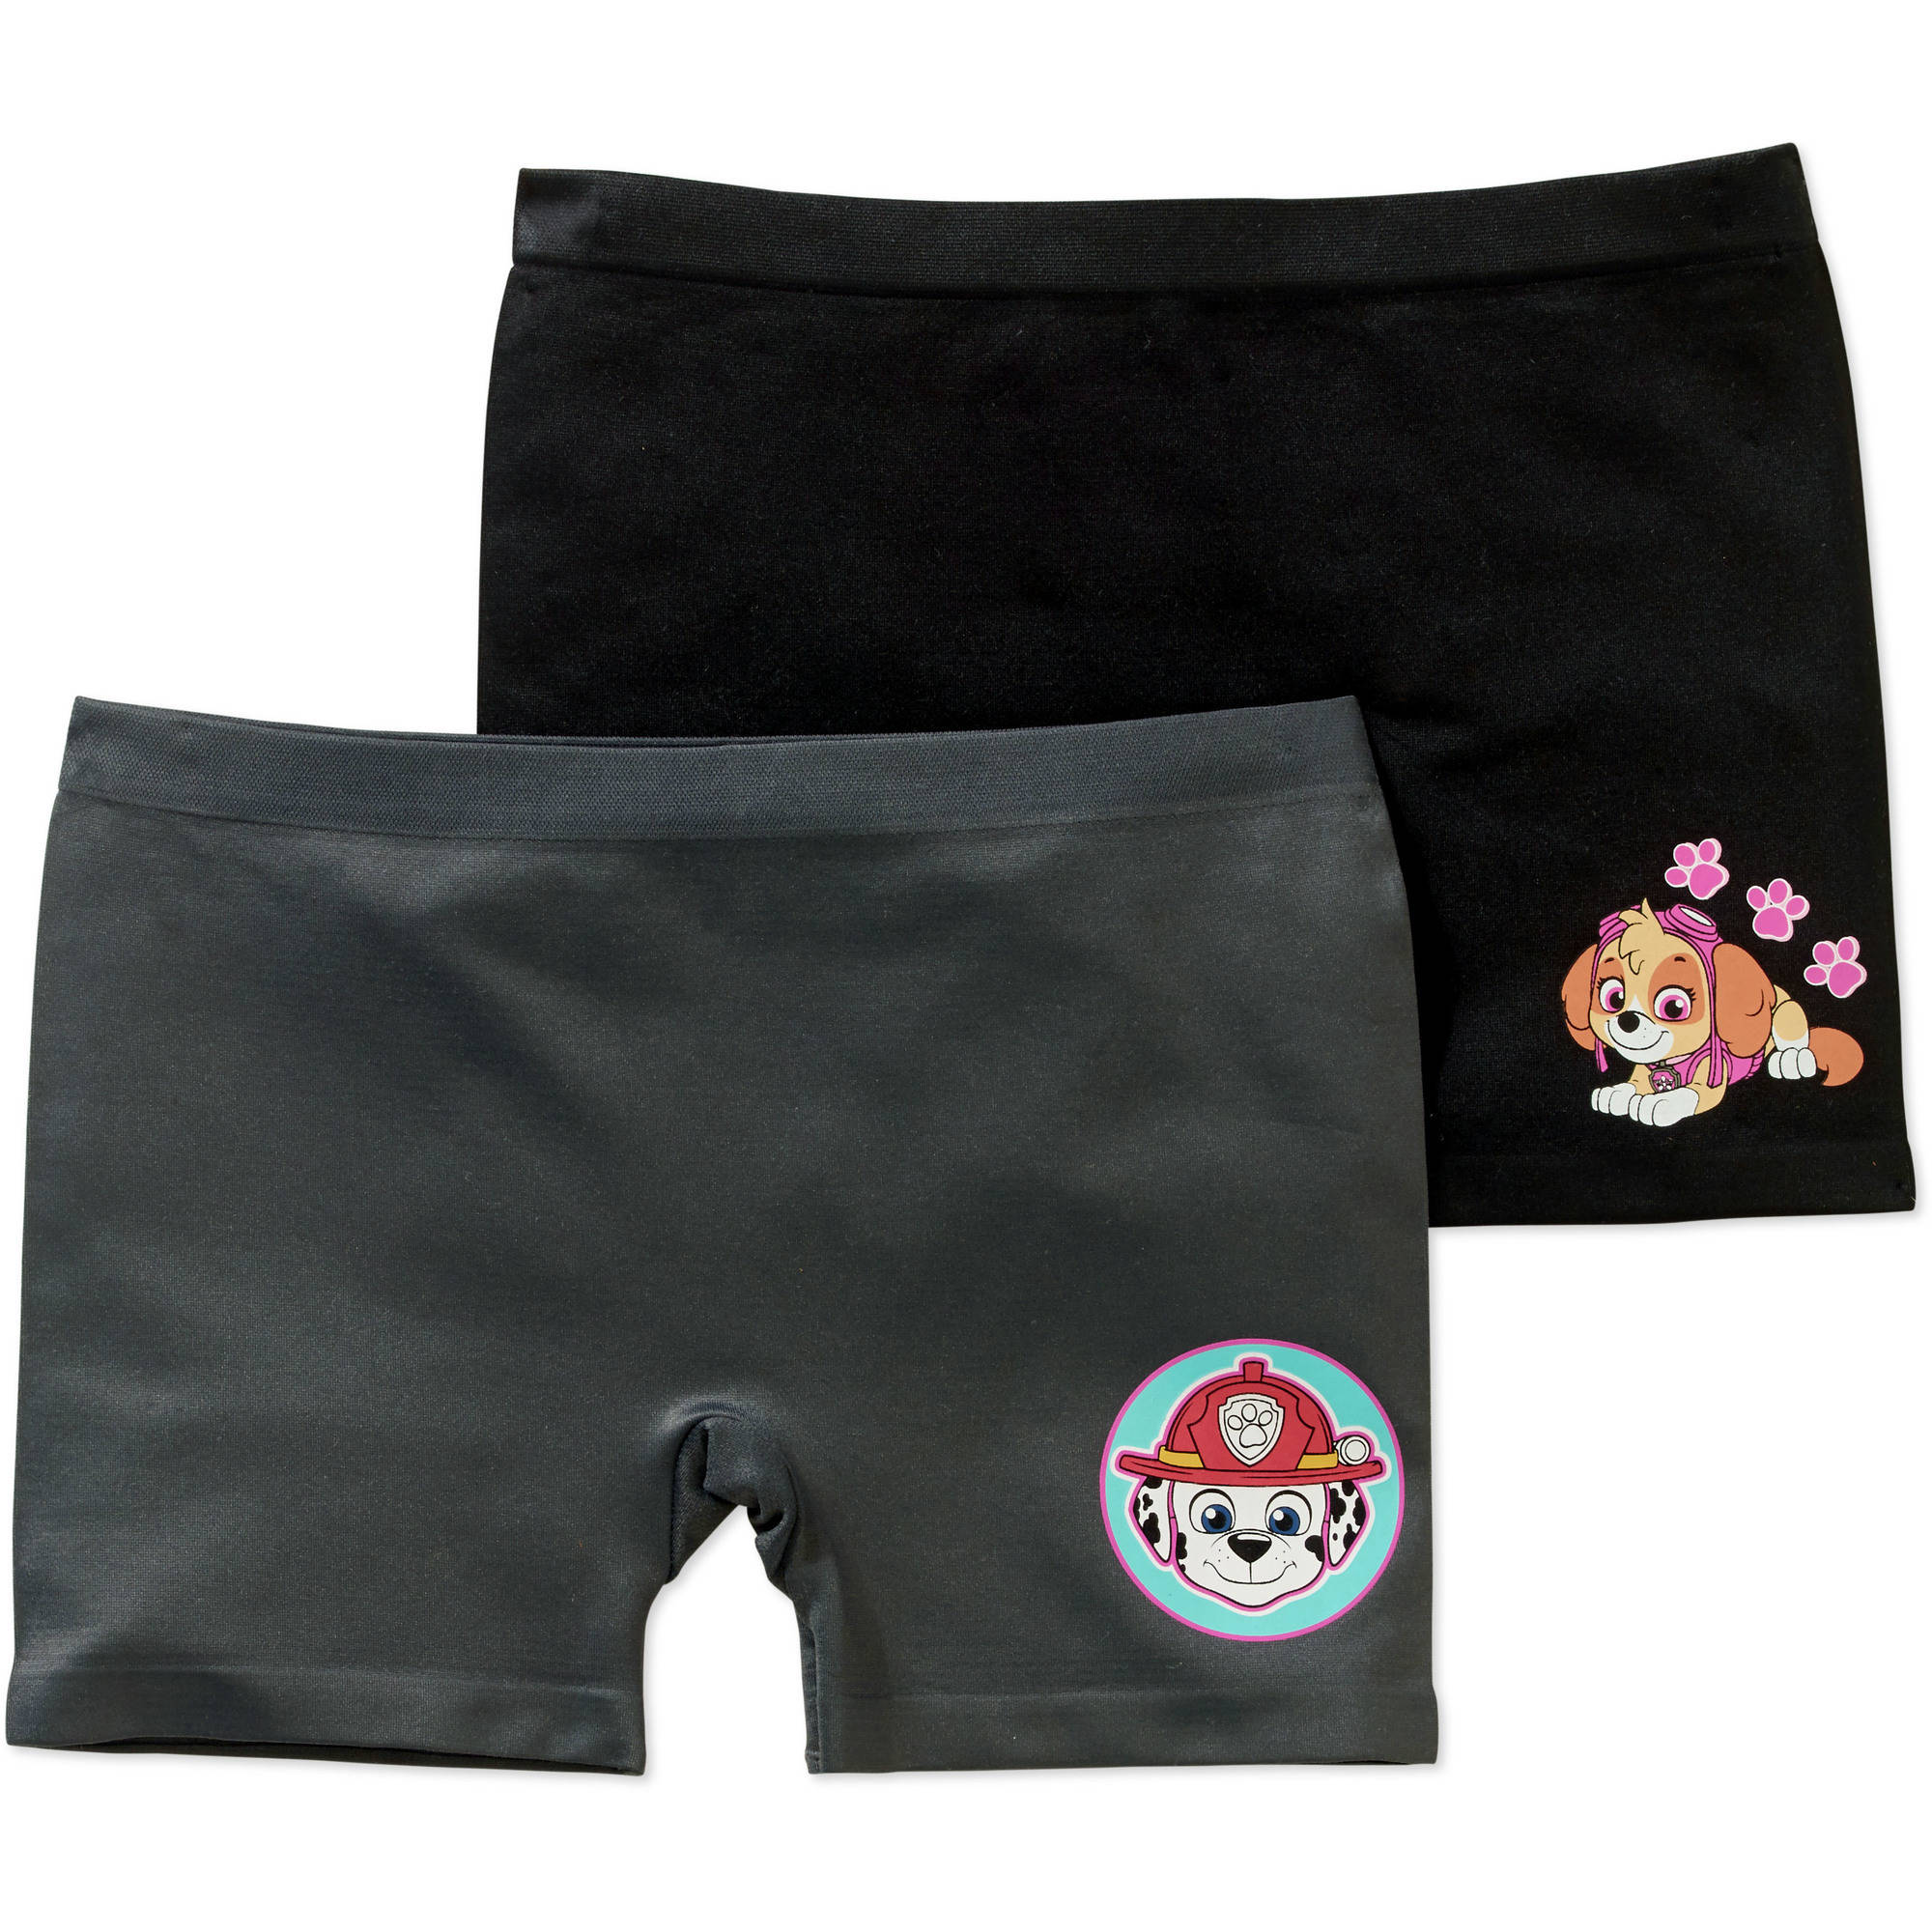 Paw Patrol Girls' Seamless Play Shorts 2 Pack